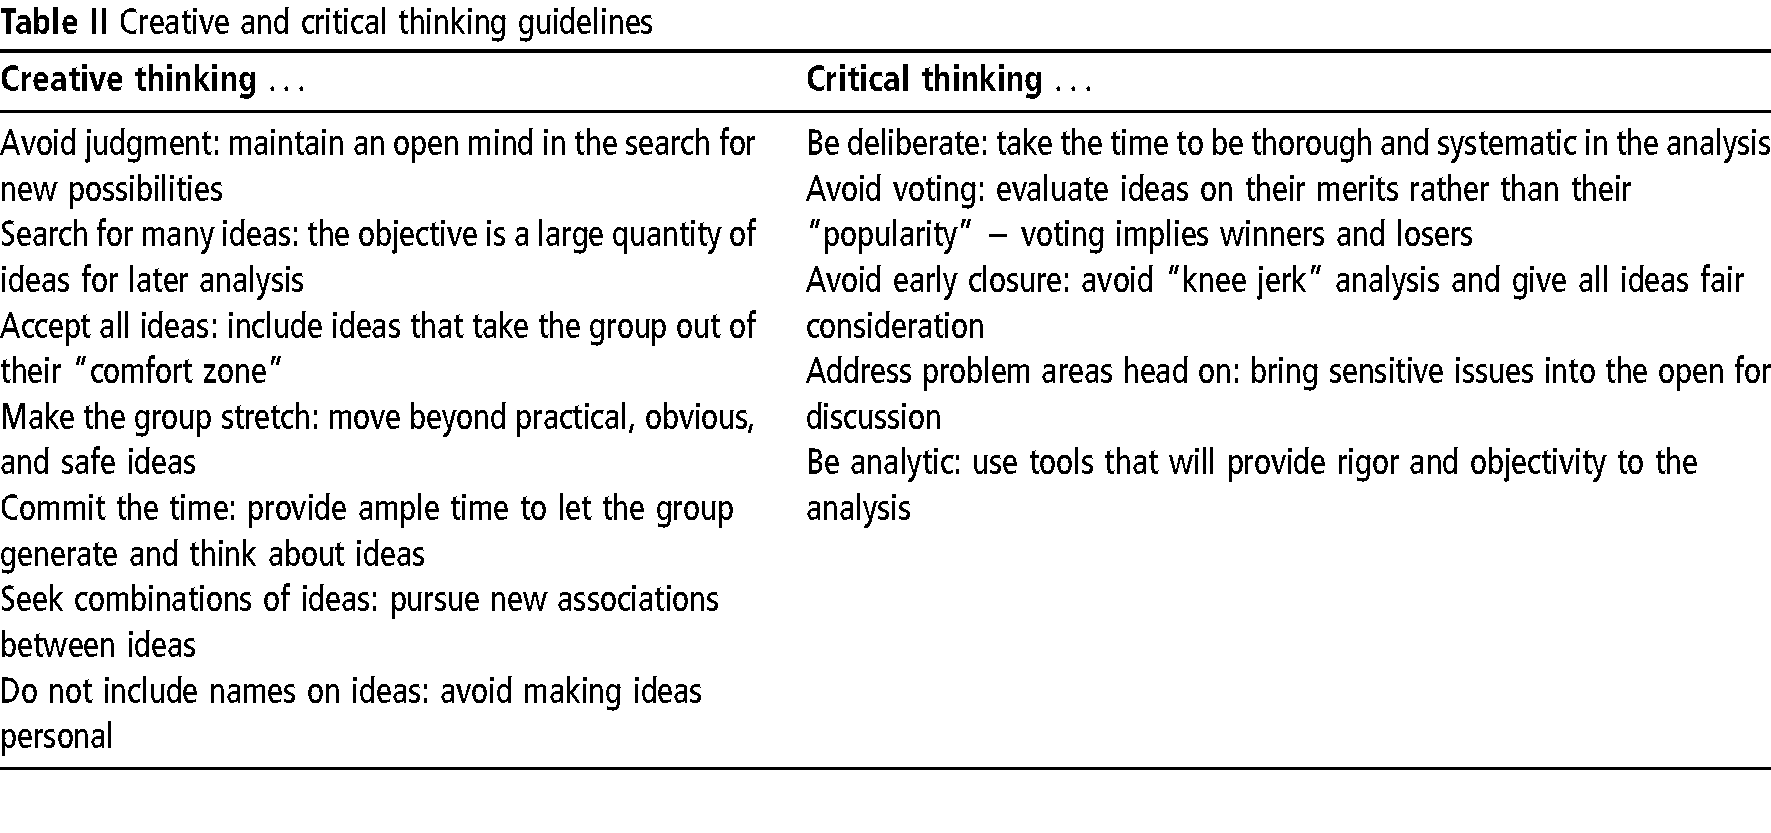 best images about critical thinking skills 17 best images about critical thinking skills creative technology and creative thinking